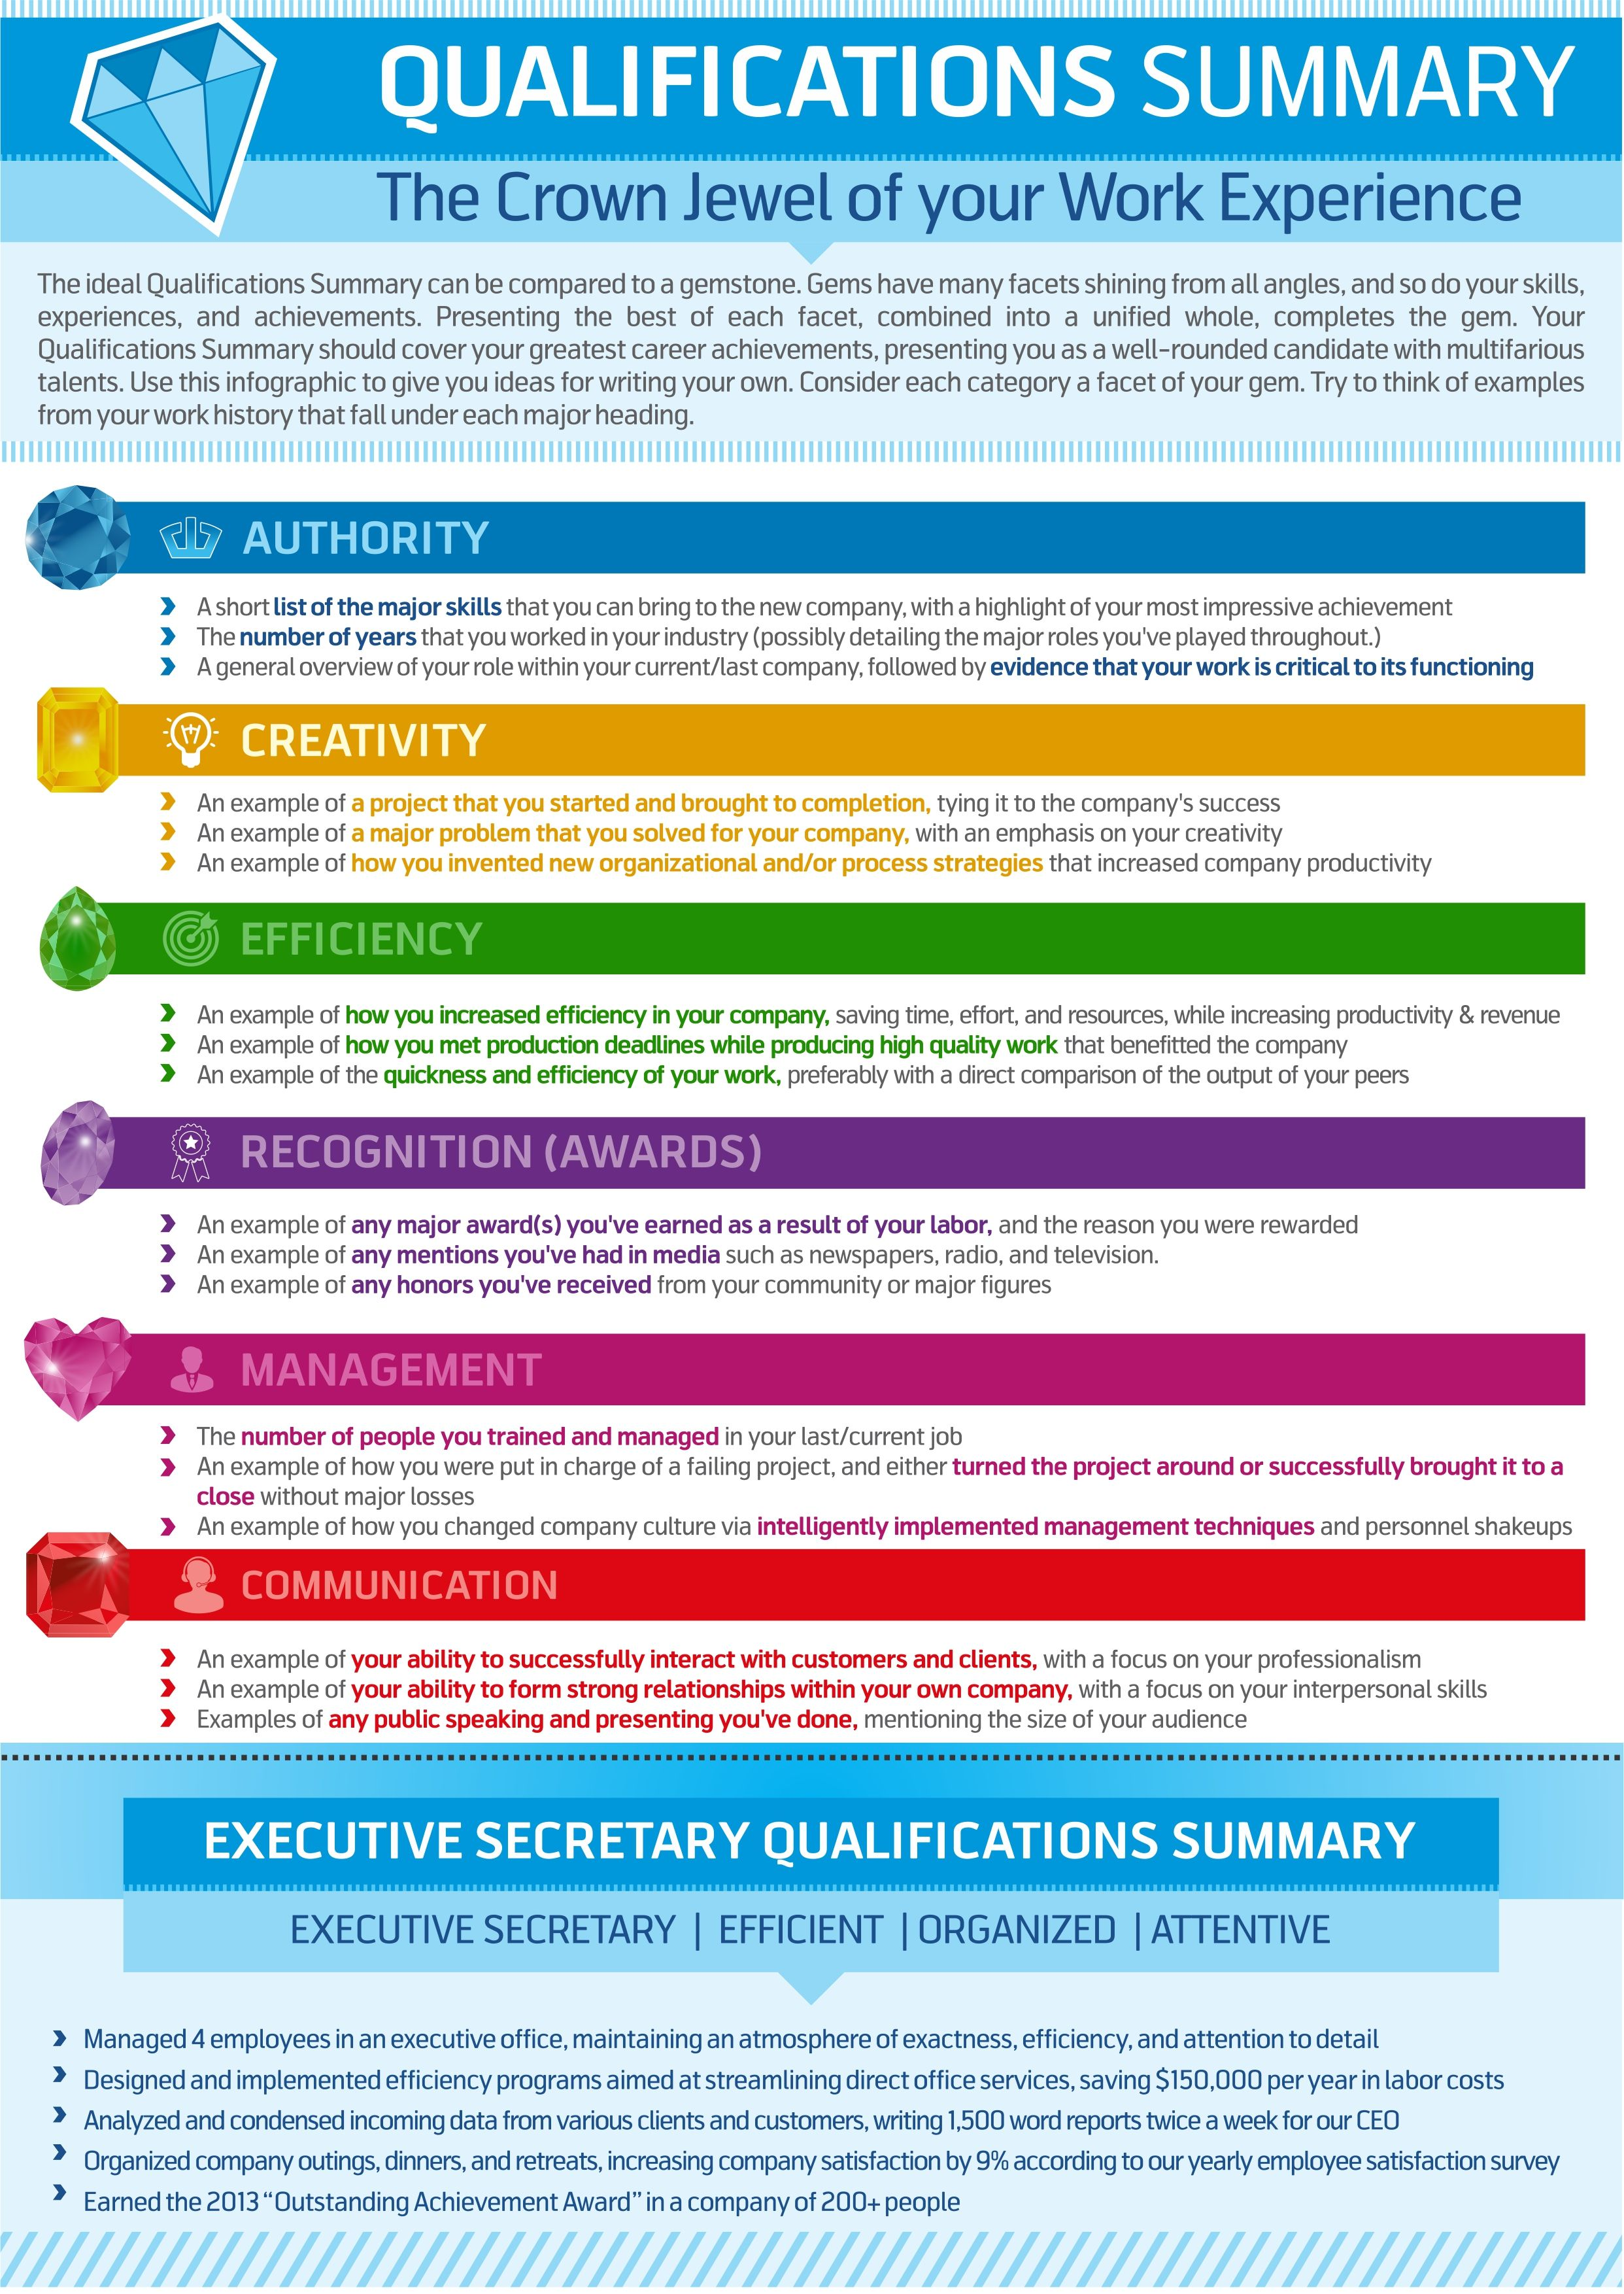 Resume Writing Blogs How To Write A Qualifications Summary Infographic